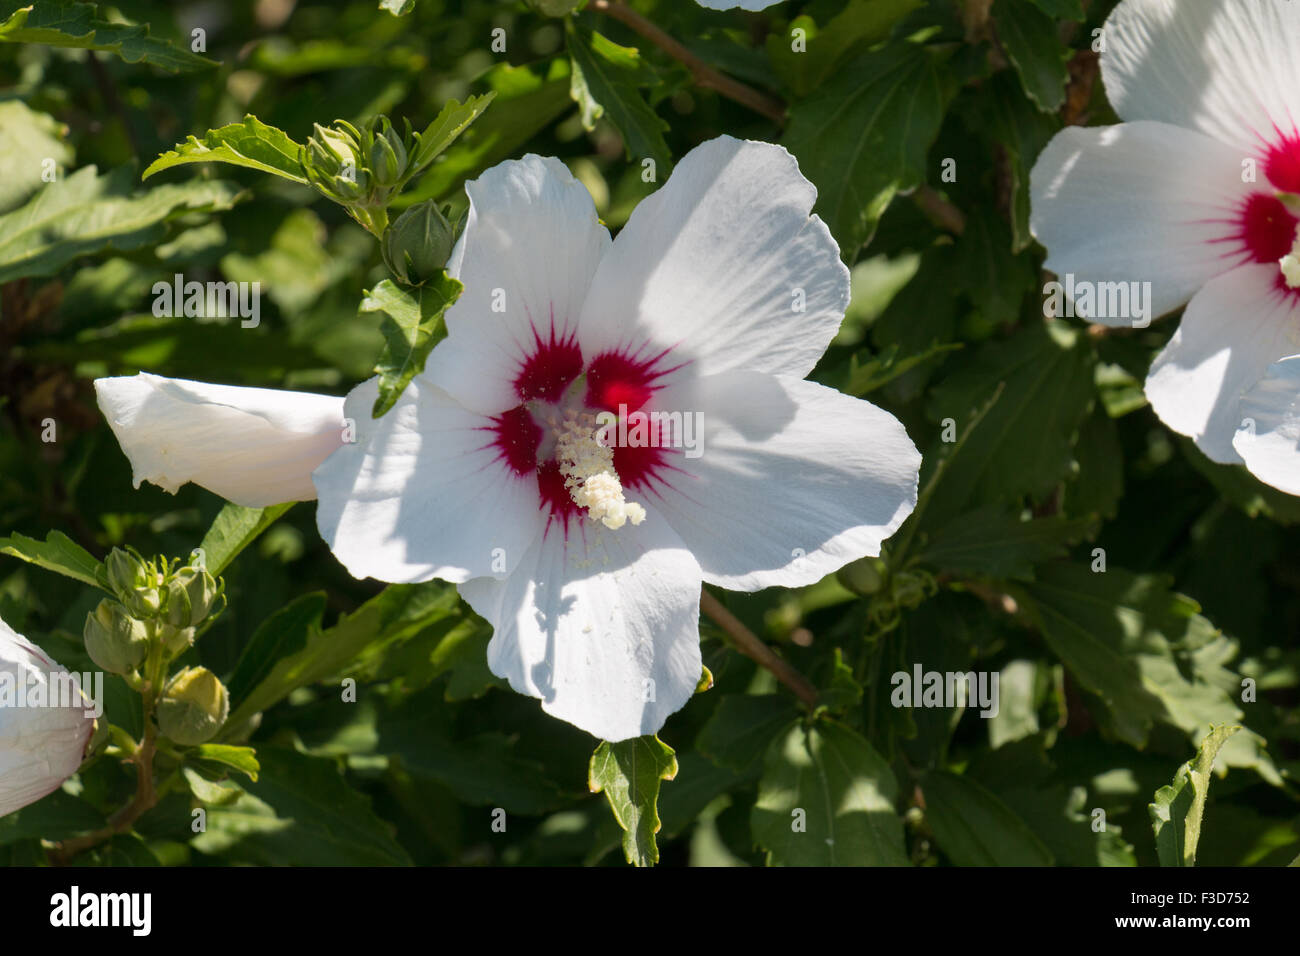 Colorful red tropical hibiscus flower stock photos colorful red white hibiscus flower with a red heart stock image izmirmasajfo Gallery